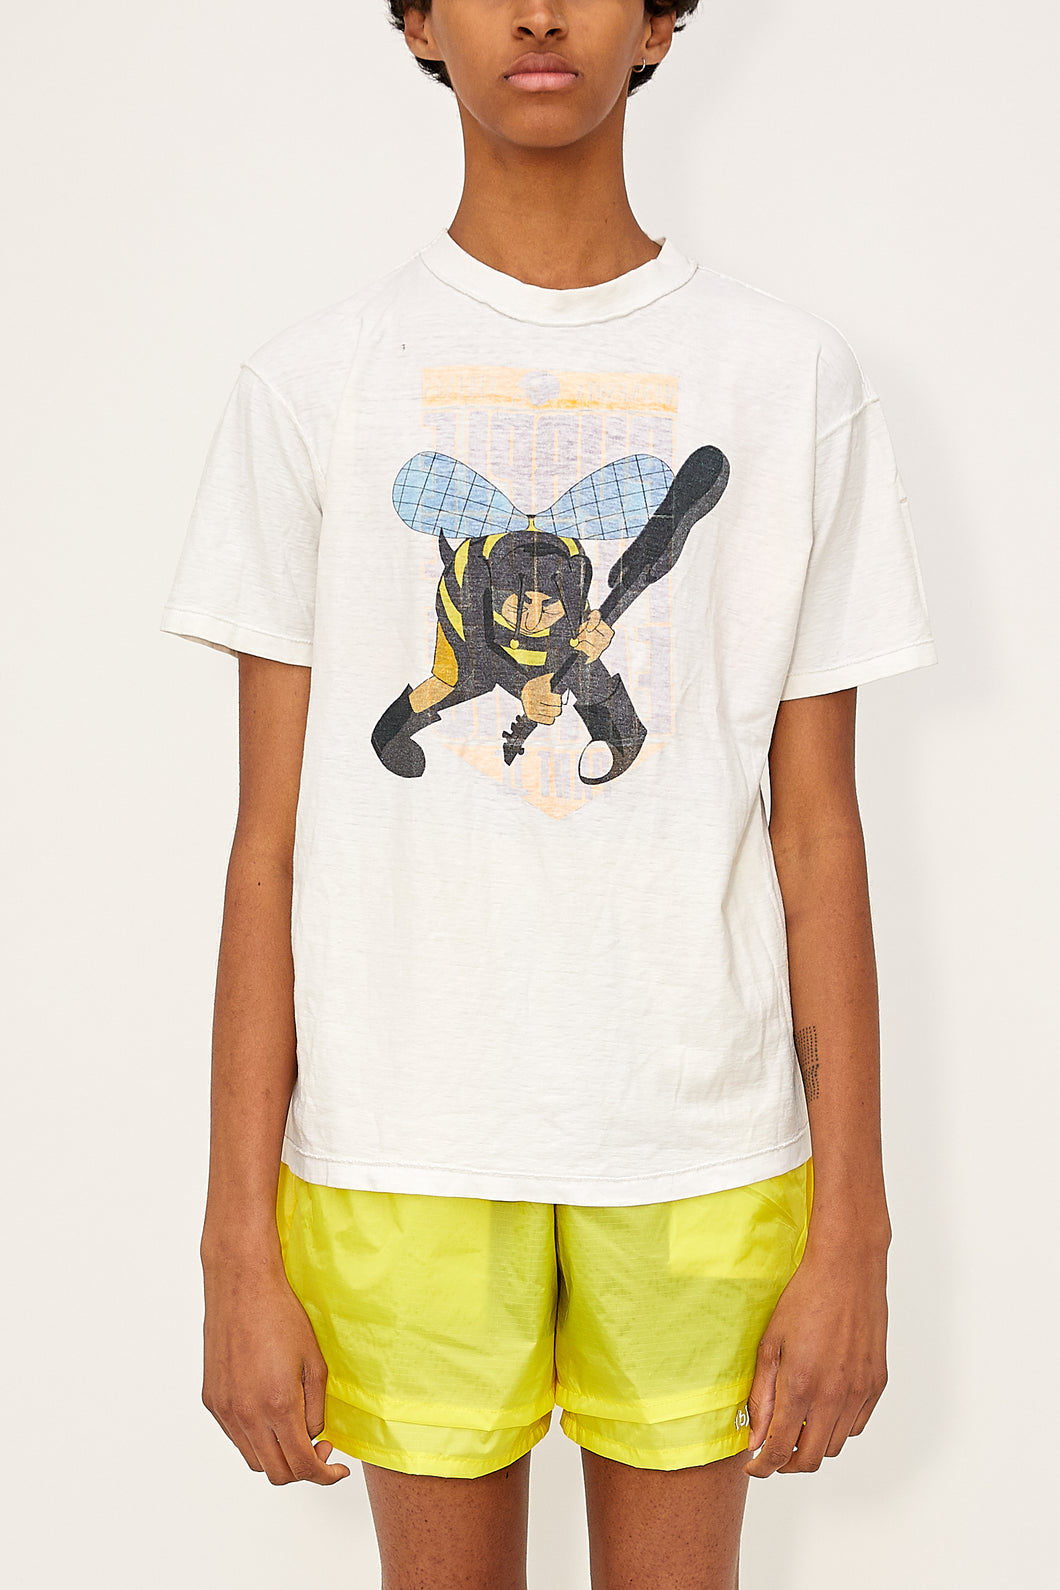 Bstroy x Blackfist Reversible Angry Bee Tee (White)